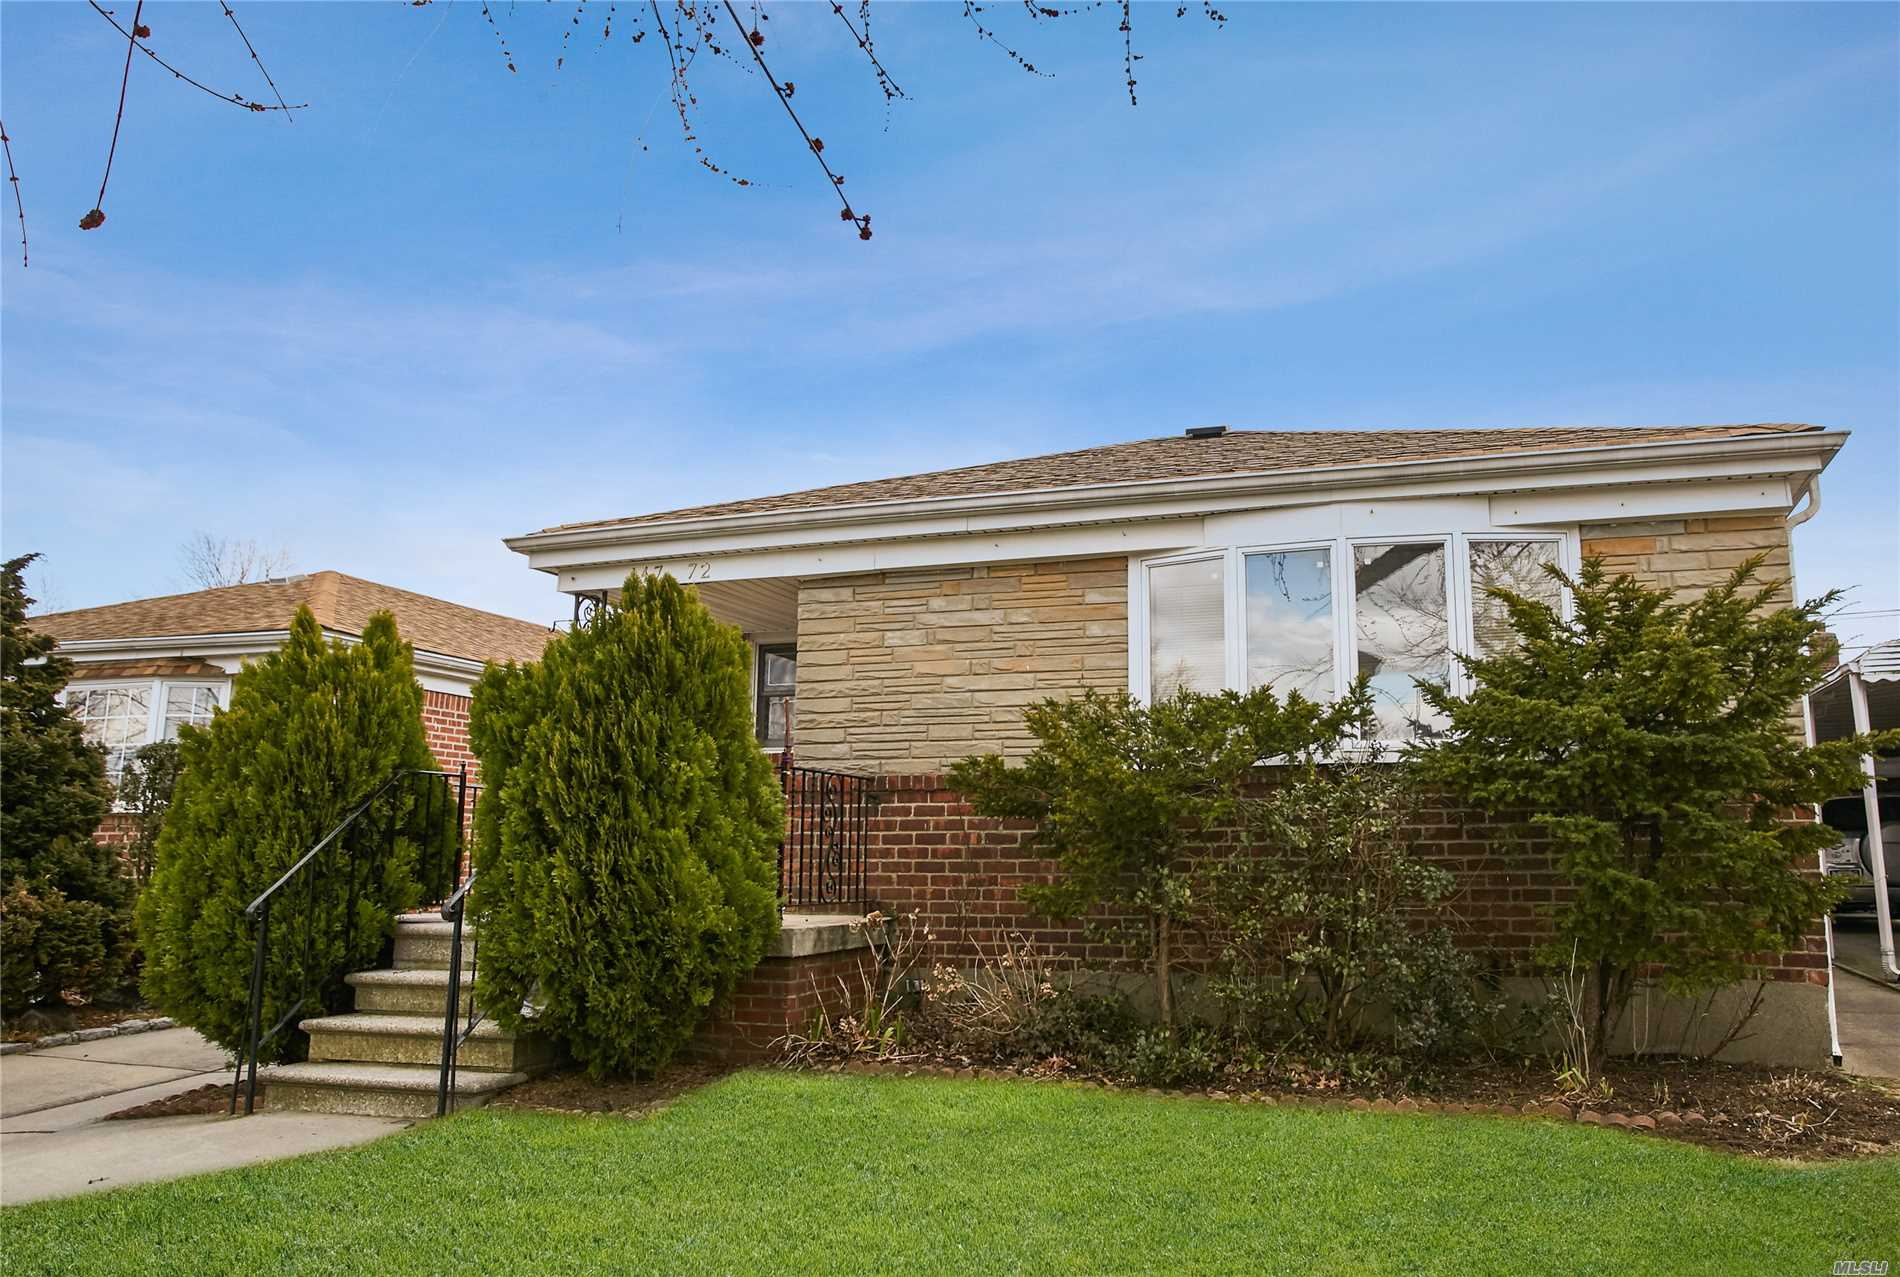 Beautiful Ranch with Eat in Kitchen, Formal Dining Room, Living Room, 3 Bedrooms, 1 Full Bath. Full Basement with Laundry Room and Cedar closet,